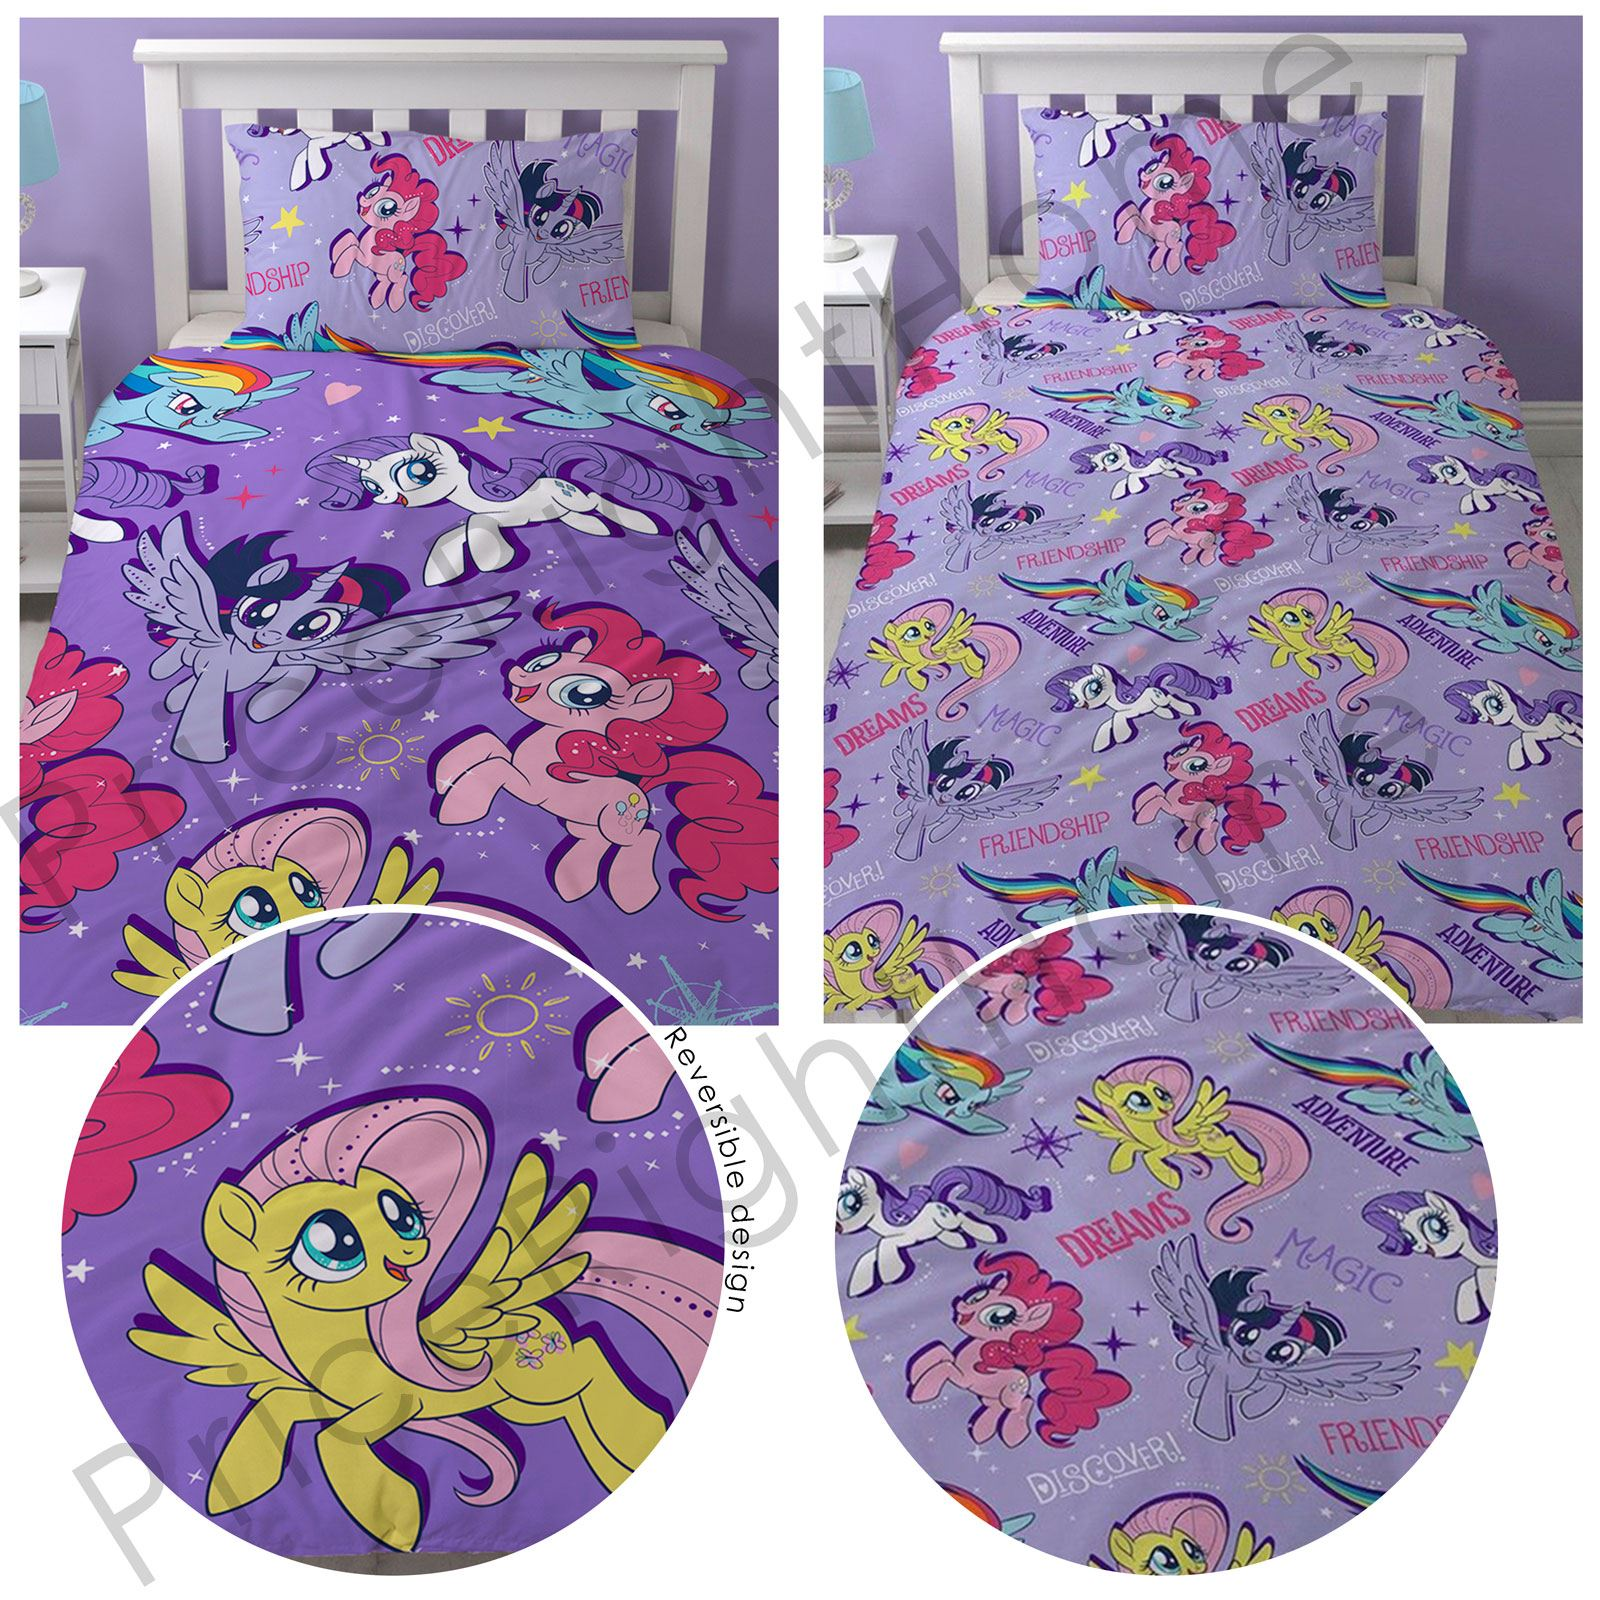 MY LITTLE PONY MOVIE ADVENTURE   DUVET COVER SETS CURTAINS BLANKET CUSHION  RUG